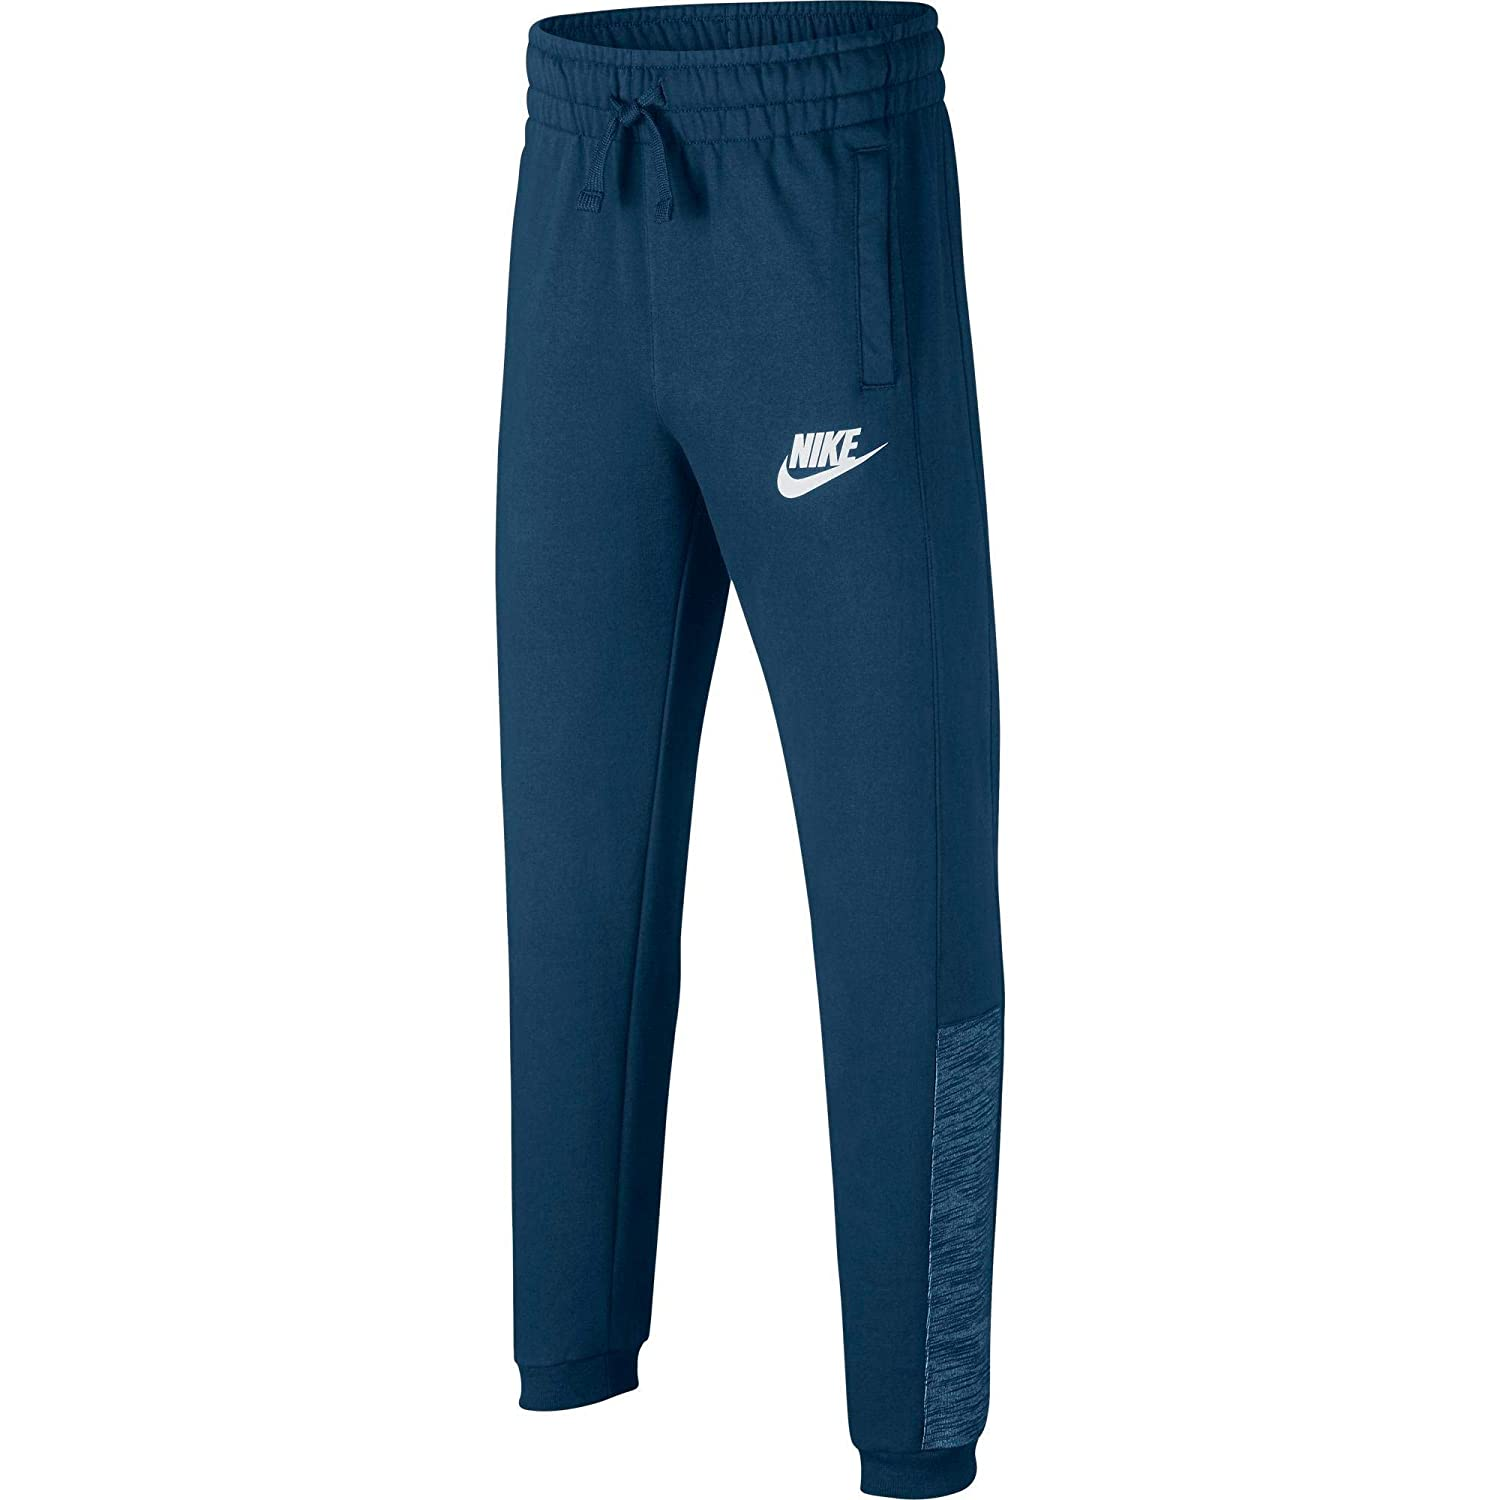 Nike Boys 'Advance Tracksuit Bottoms